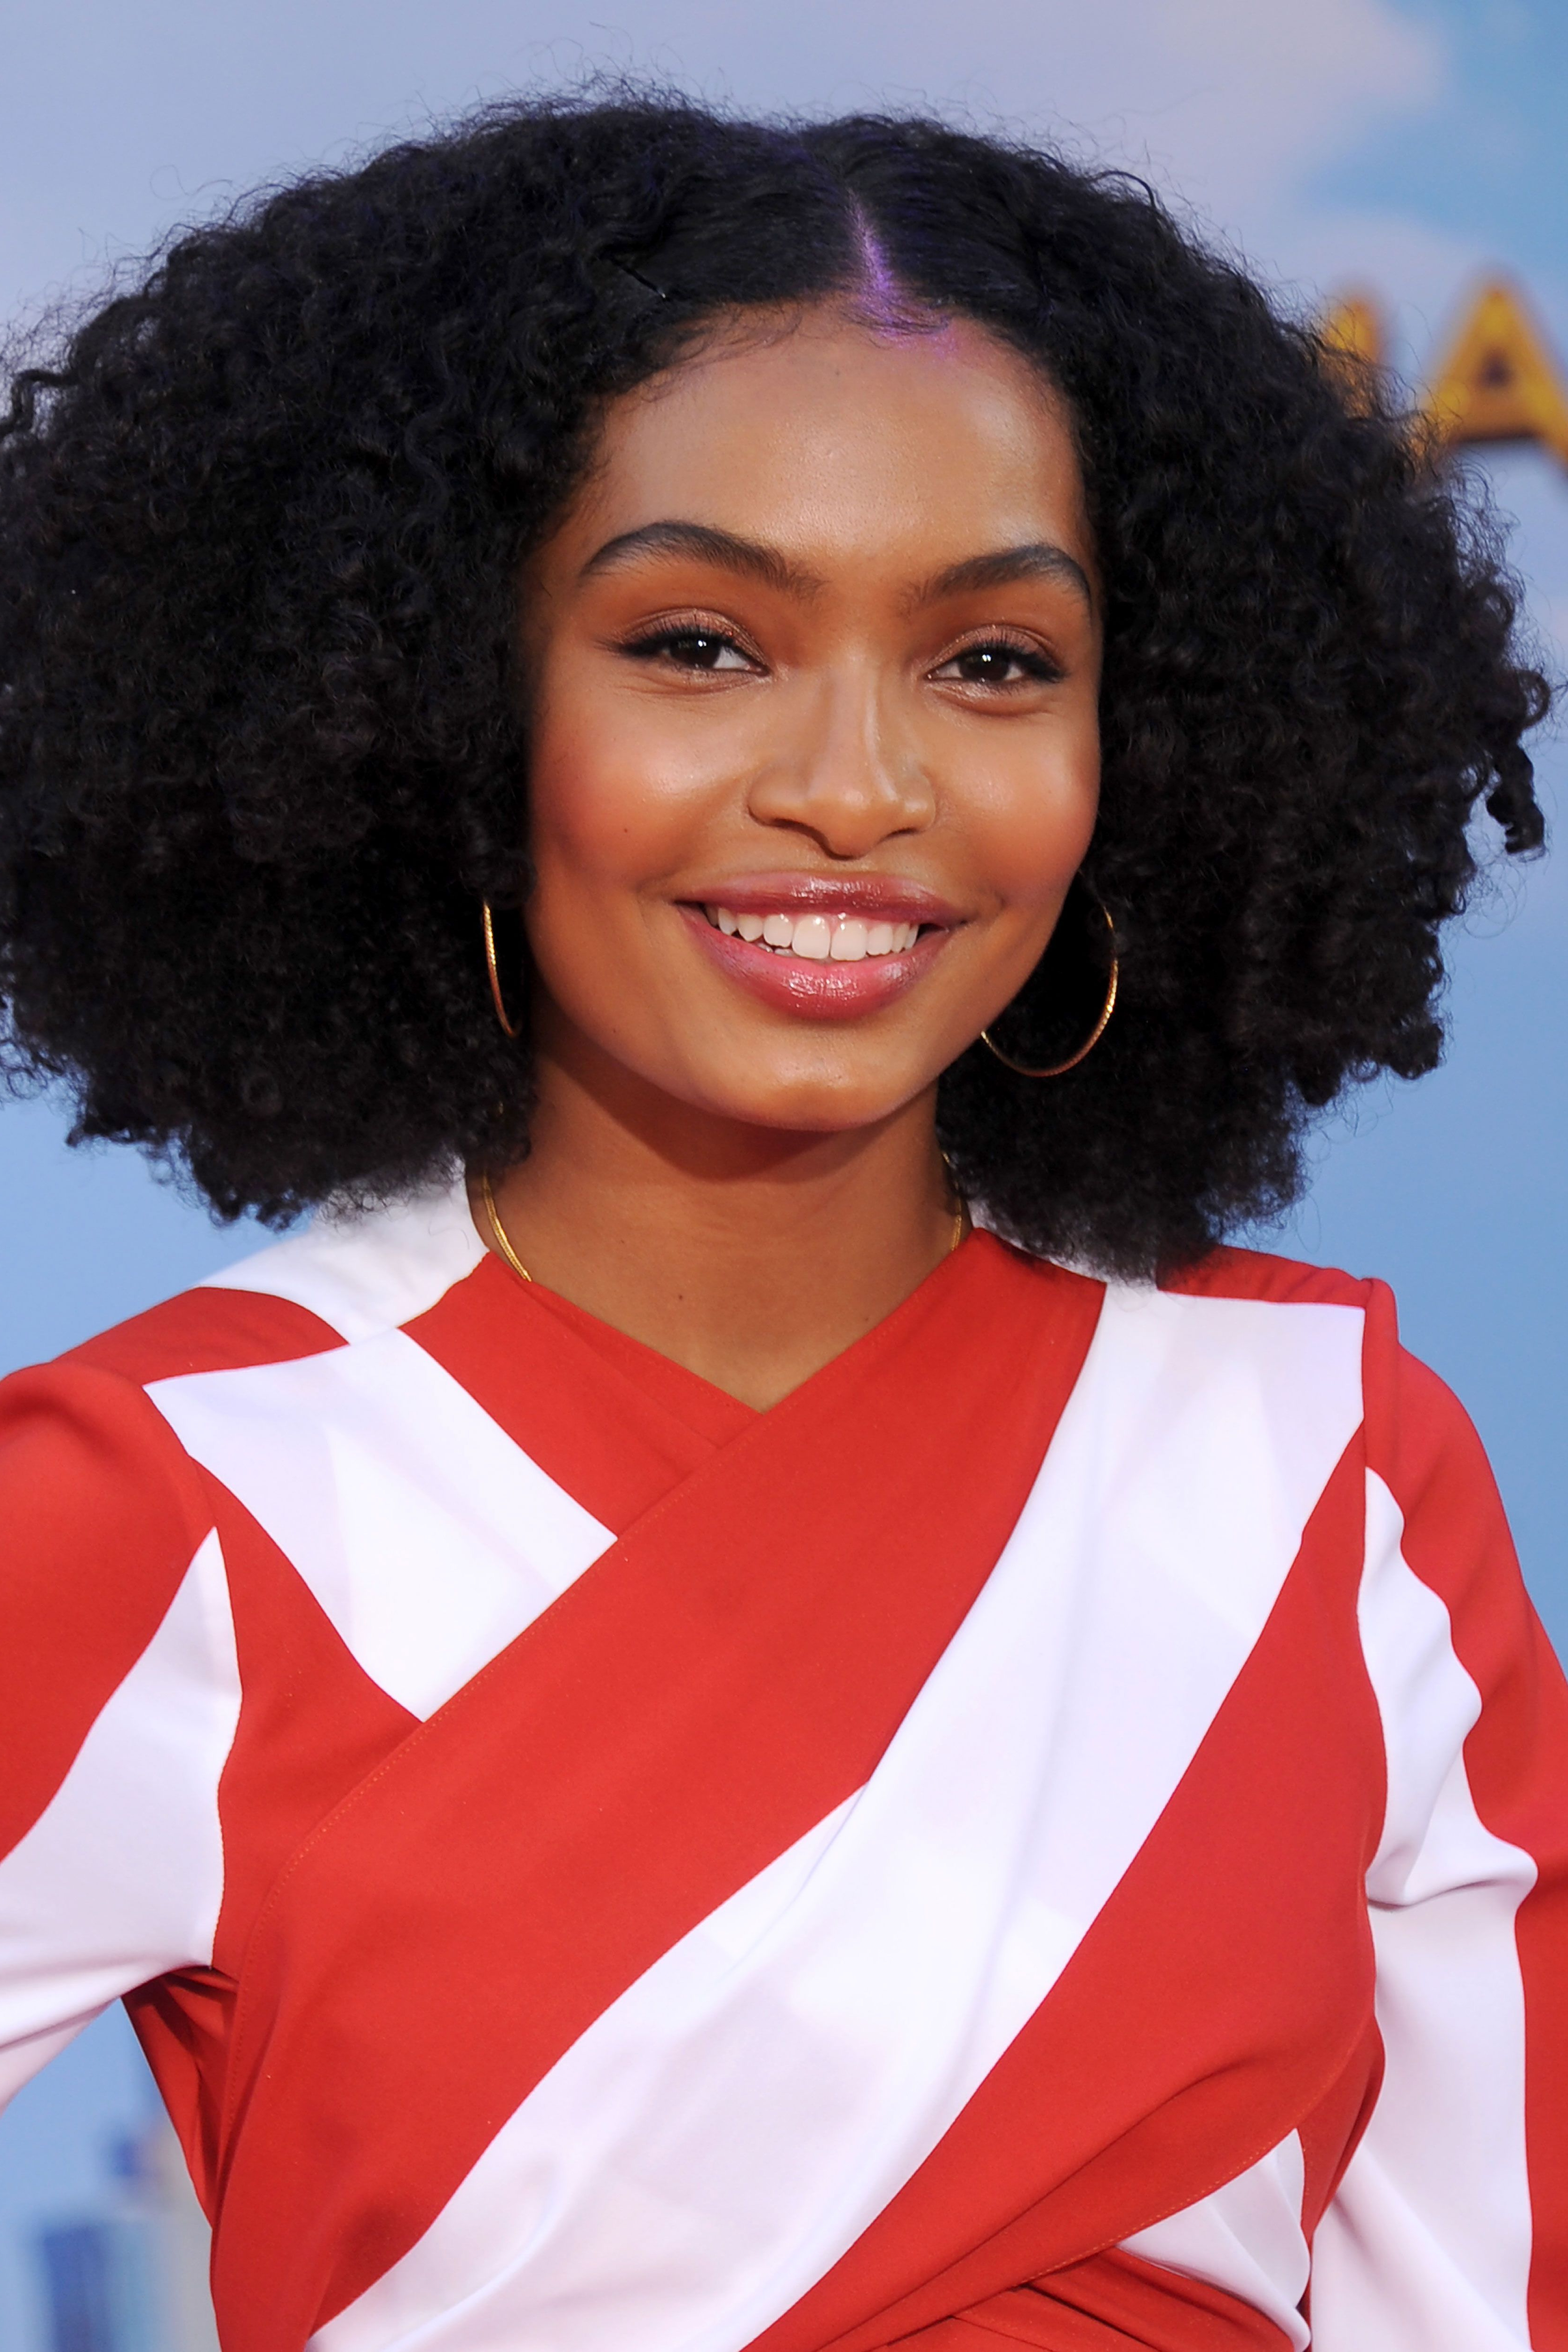 Most Popular Medium Haircuts For Naturally Curly Black Hair Pertaining To 42 Easy Curly Hairstyles – Short, Medium, And Long Haircuts For (View 13 of 20)